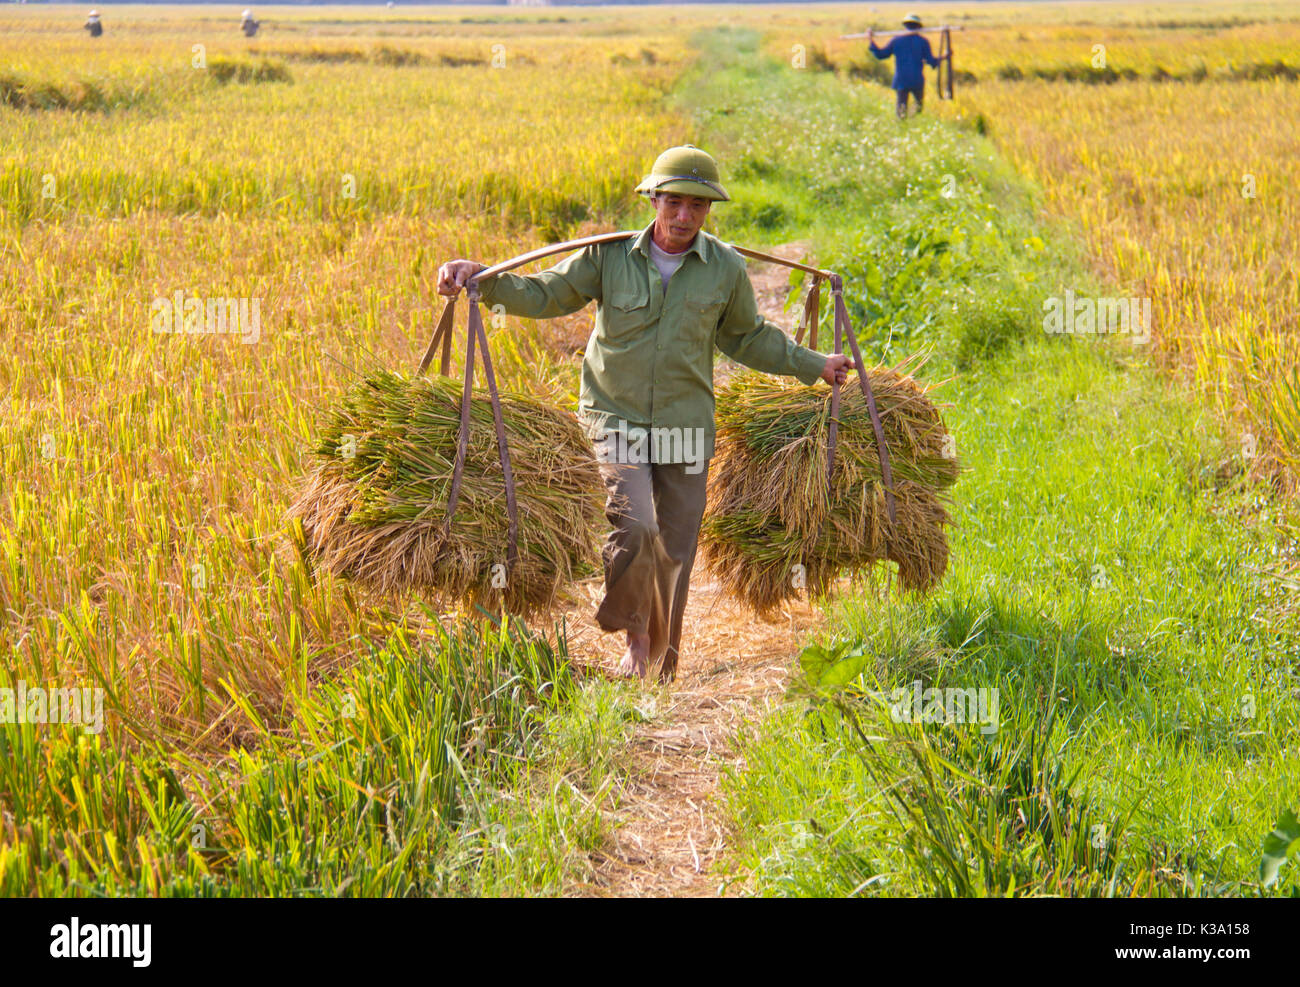 North Vietnamese farmer harvests field on Oct 25, 2011 - Stock Image